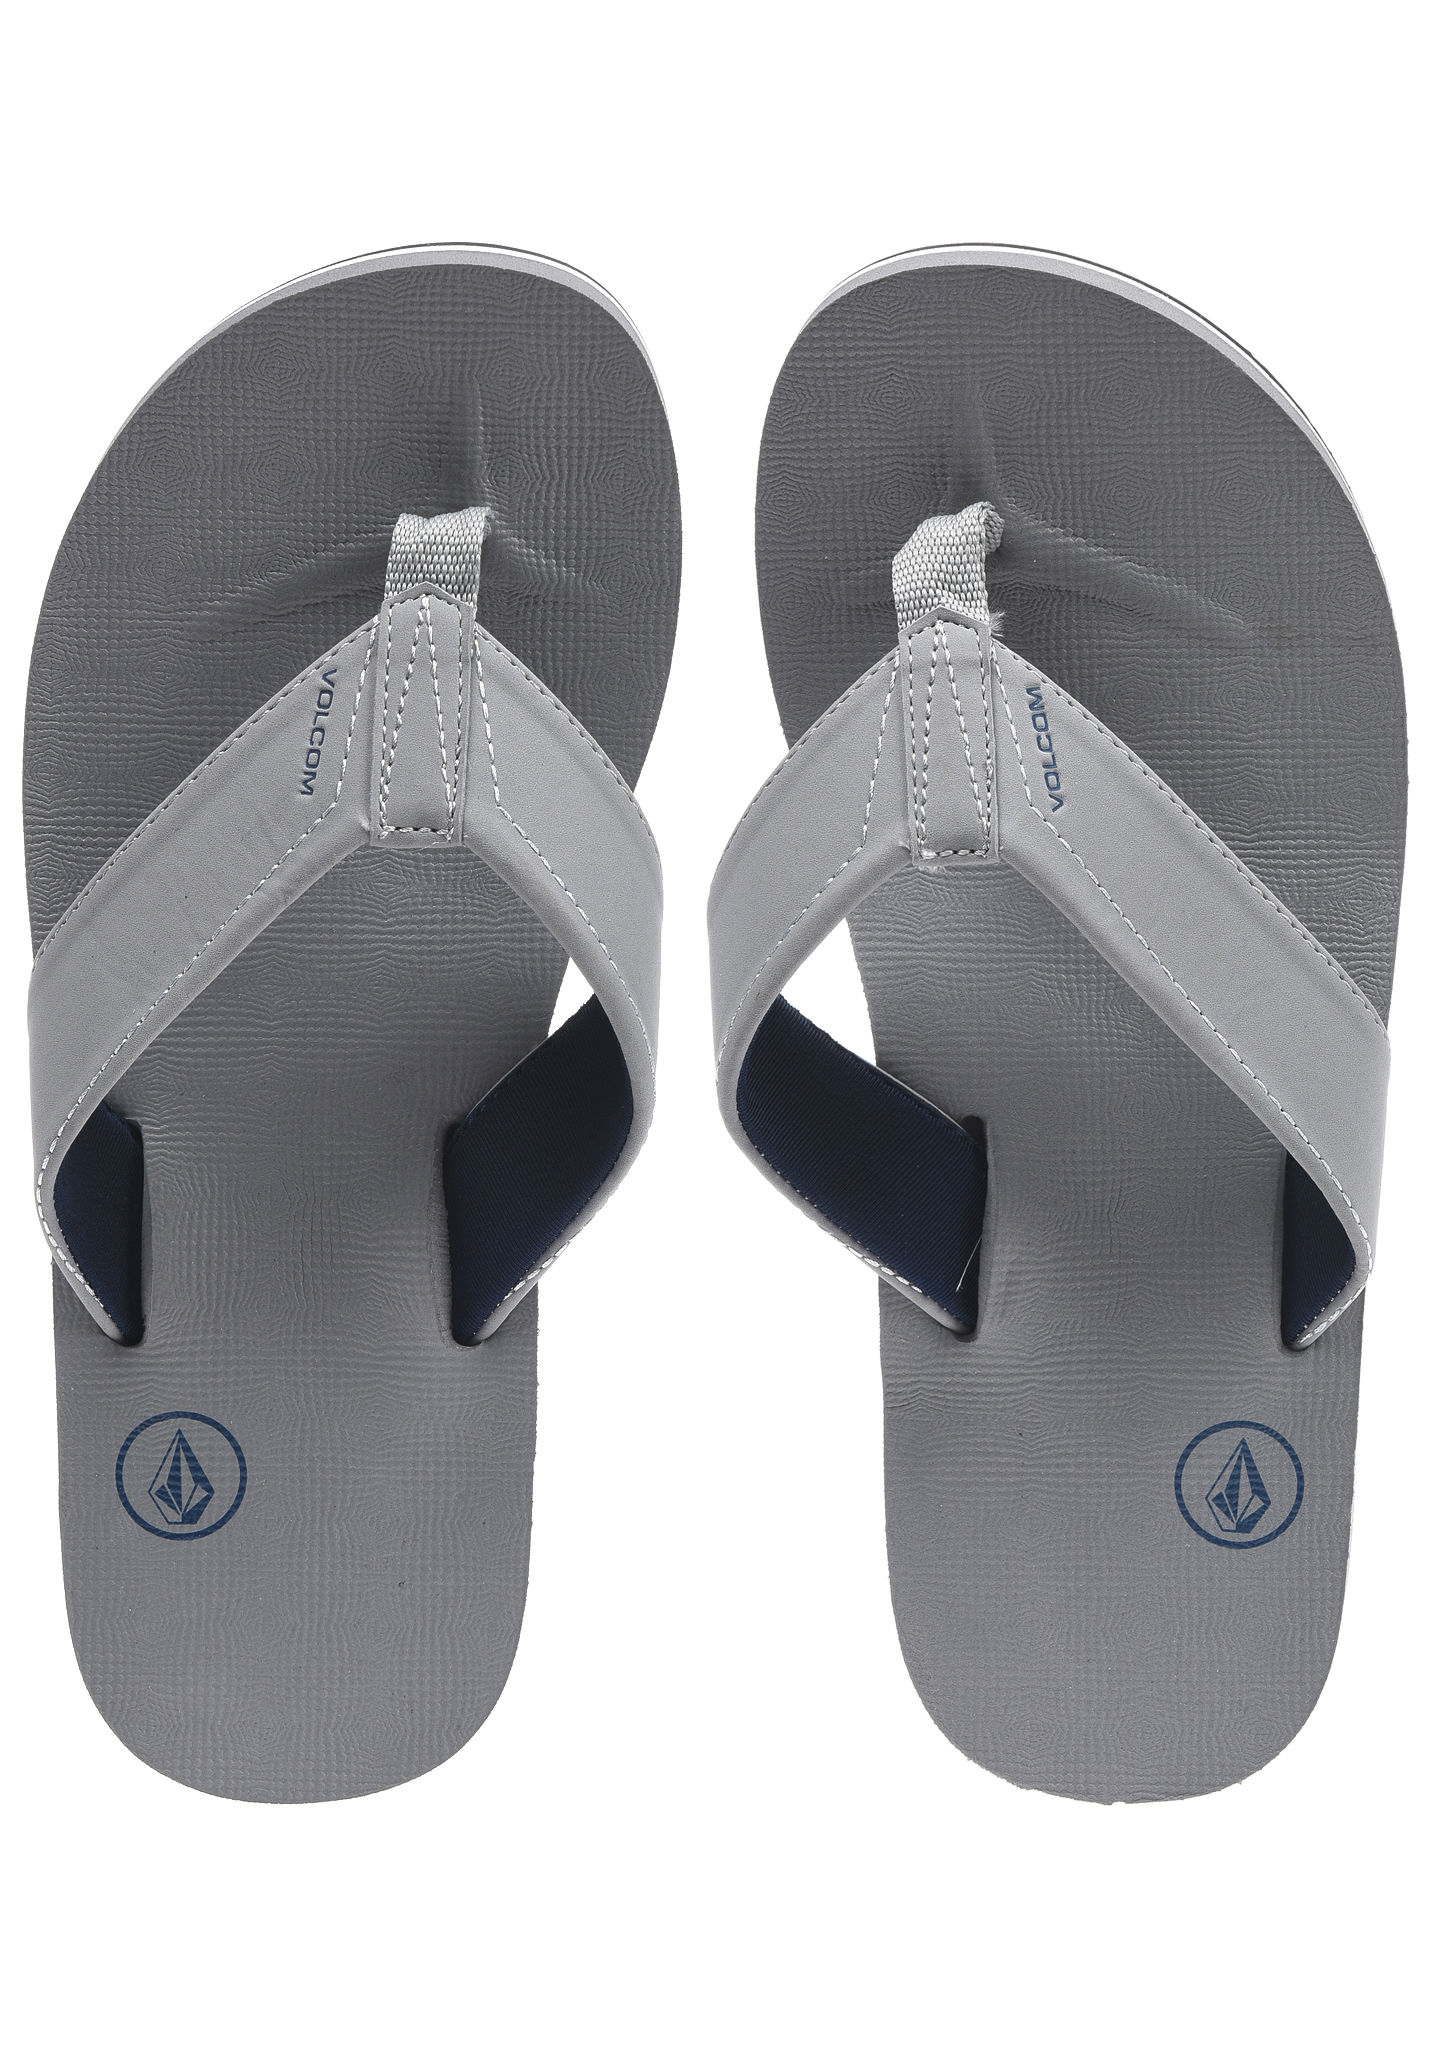 d74085904690a Volcom Victor - Sandals for Men - Grey - Planet Sports